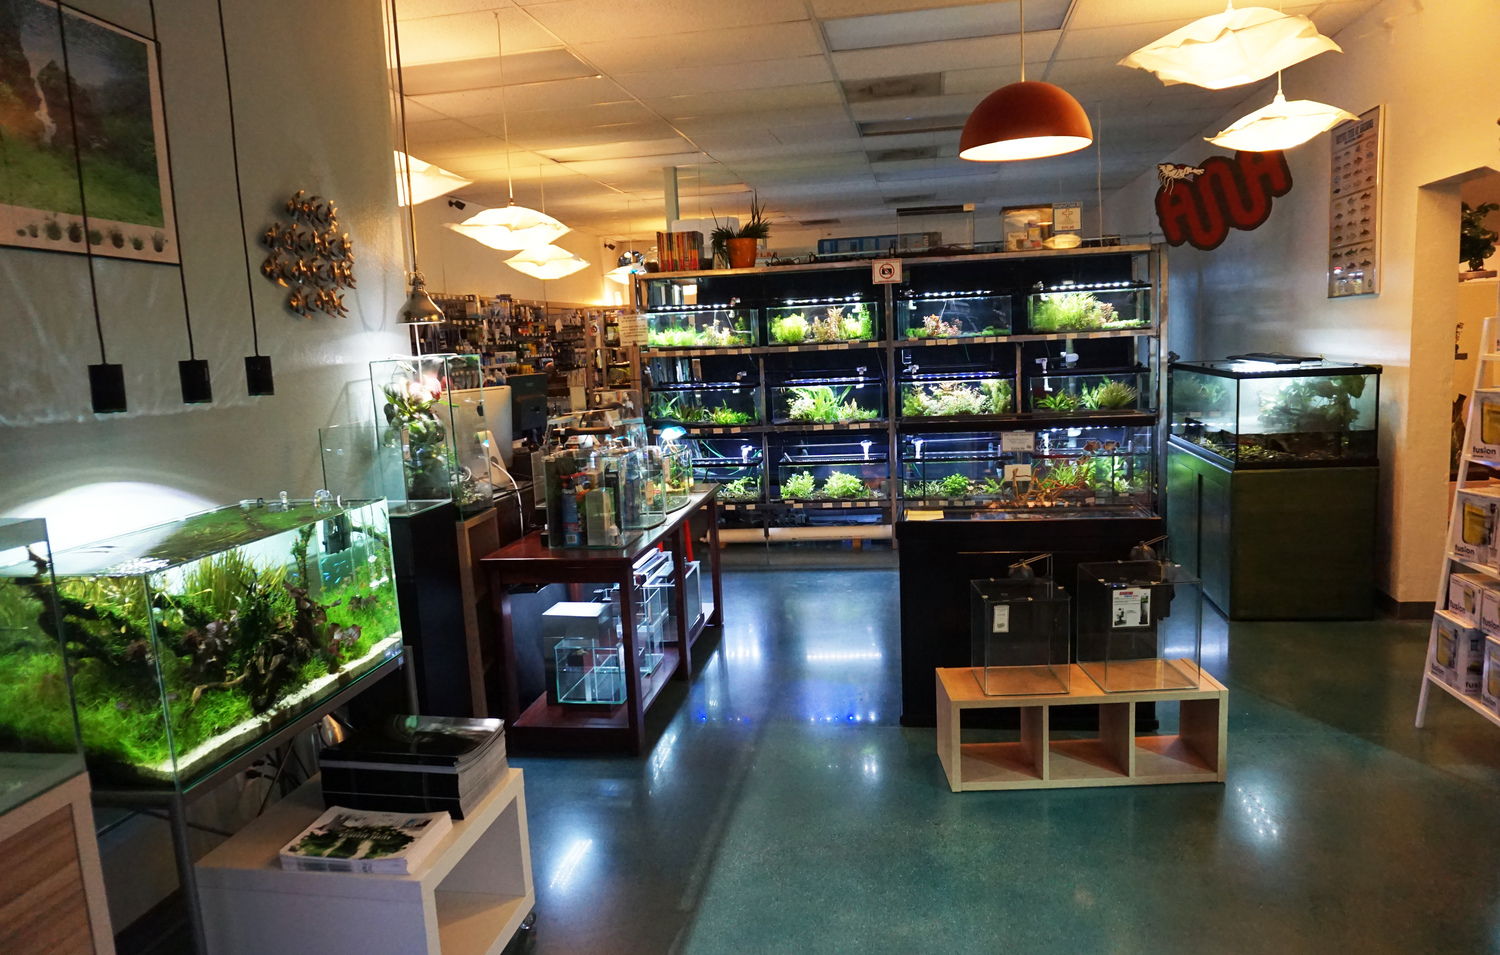 Local fish and aquarium stores in az for Fish stores around me